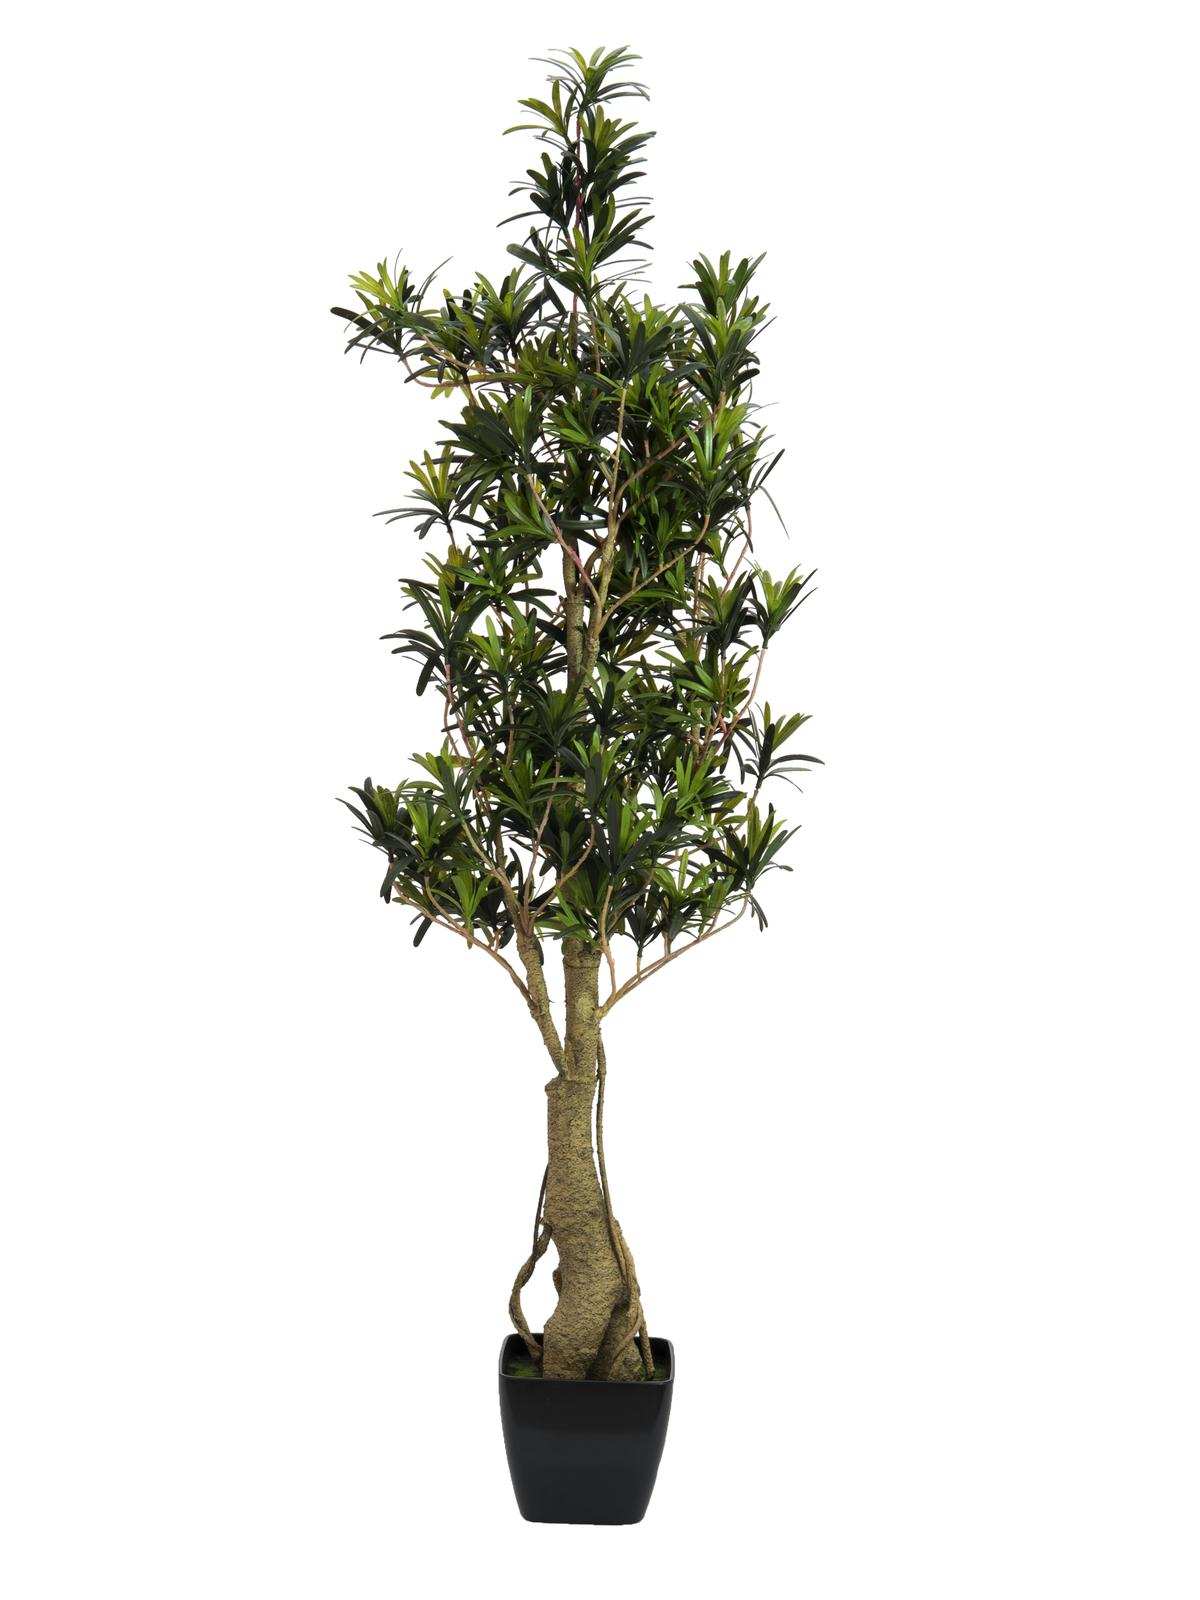 Plant Artificial Tree Podocarpus 115 cm EUROPALMS